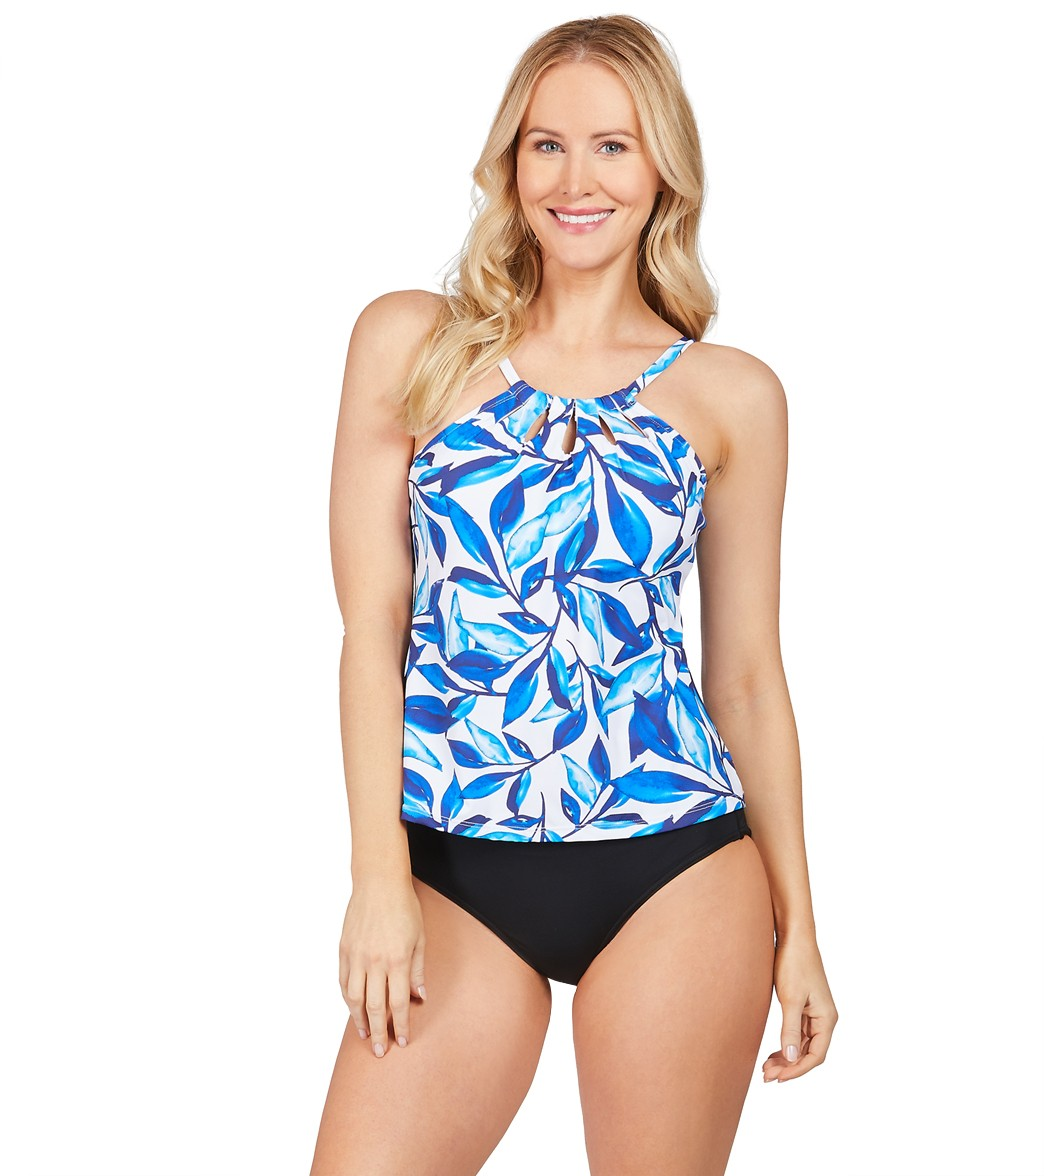 83fbb5d15aee3 24th & Ocean Laila Leaf High Neck Underwire Tankini Top at SwimOutlet.com - Free  Shipping